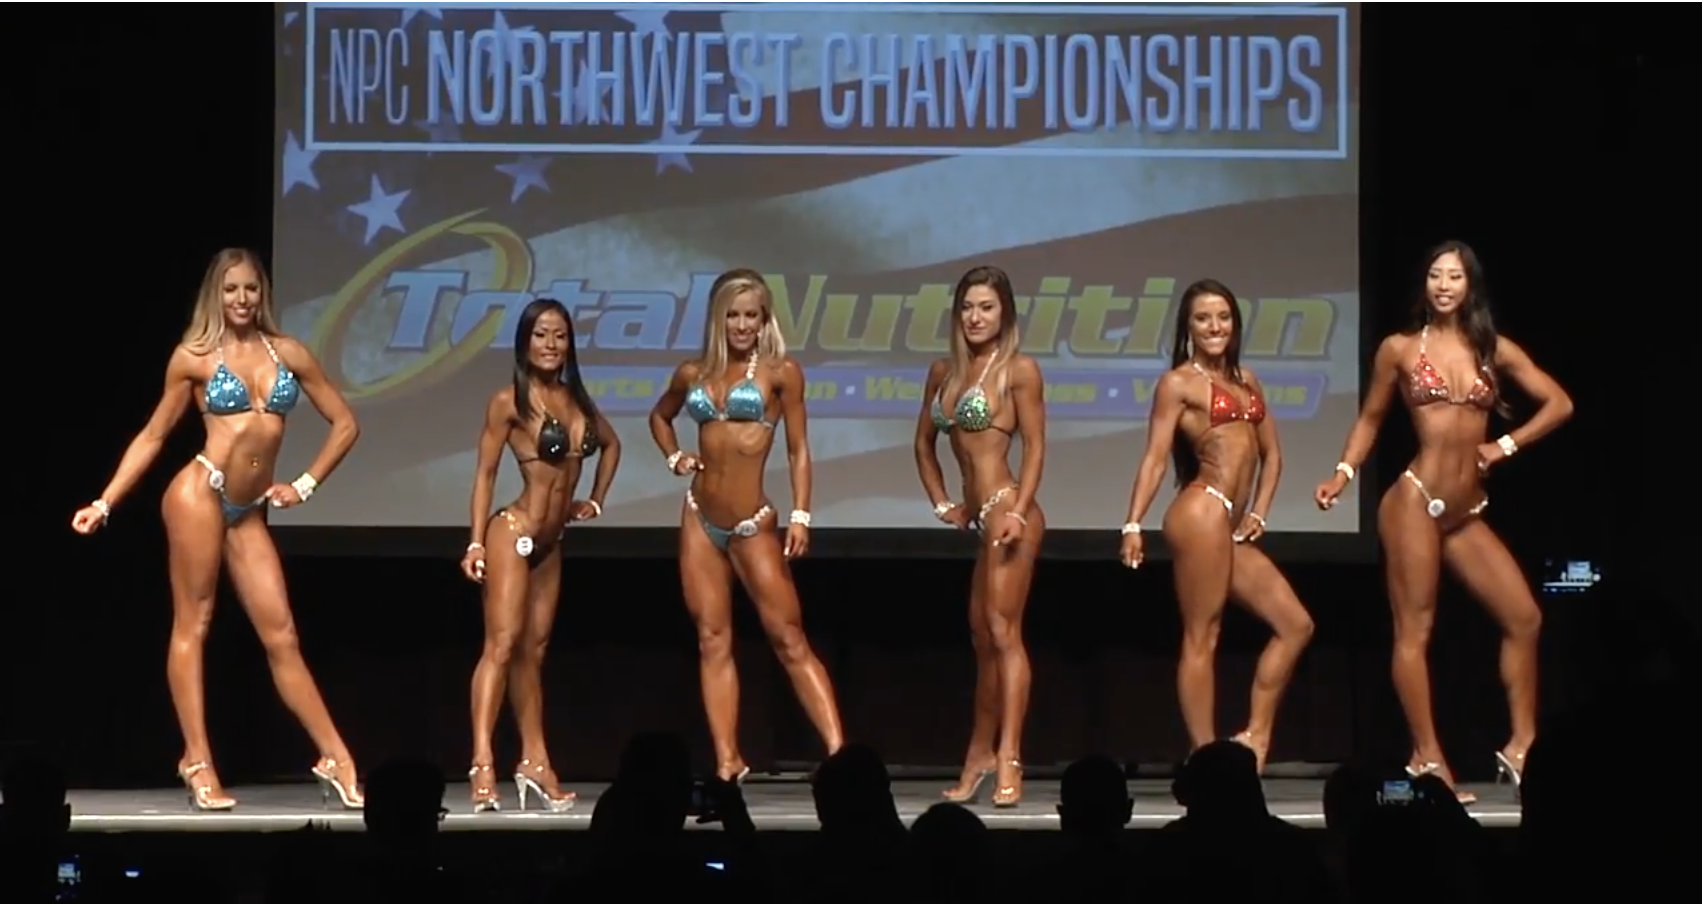 2017 NPC Northwest Championship Bikini Overall Video